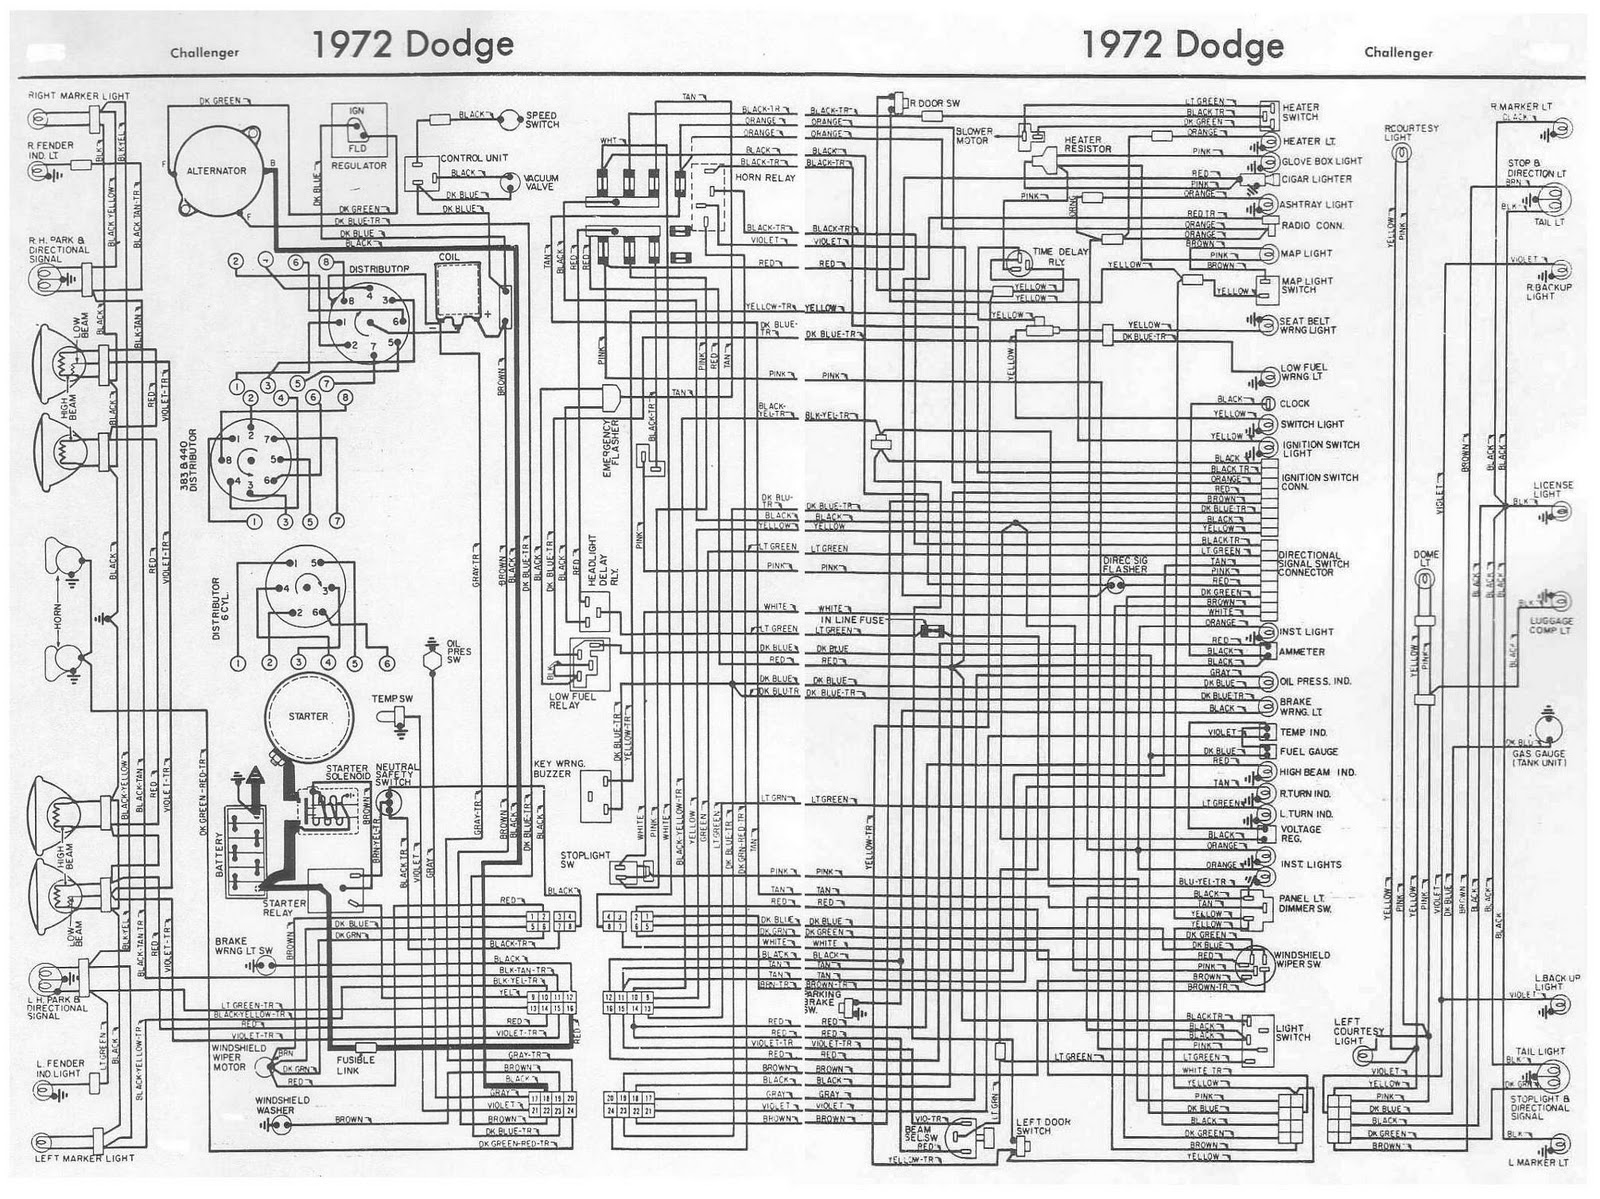 Dodge+Challenger+1972+Complete+Wiring+Diagram dodge challenger 1972 complete wiring diagram all about wiring 1972 chevy impala wiring diagram at webbmarketing.co